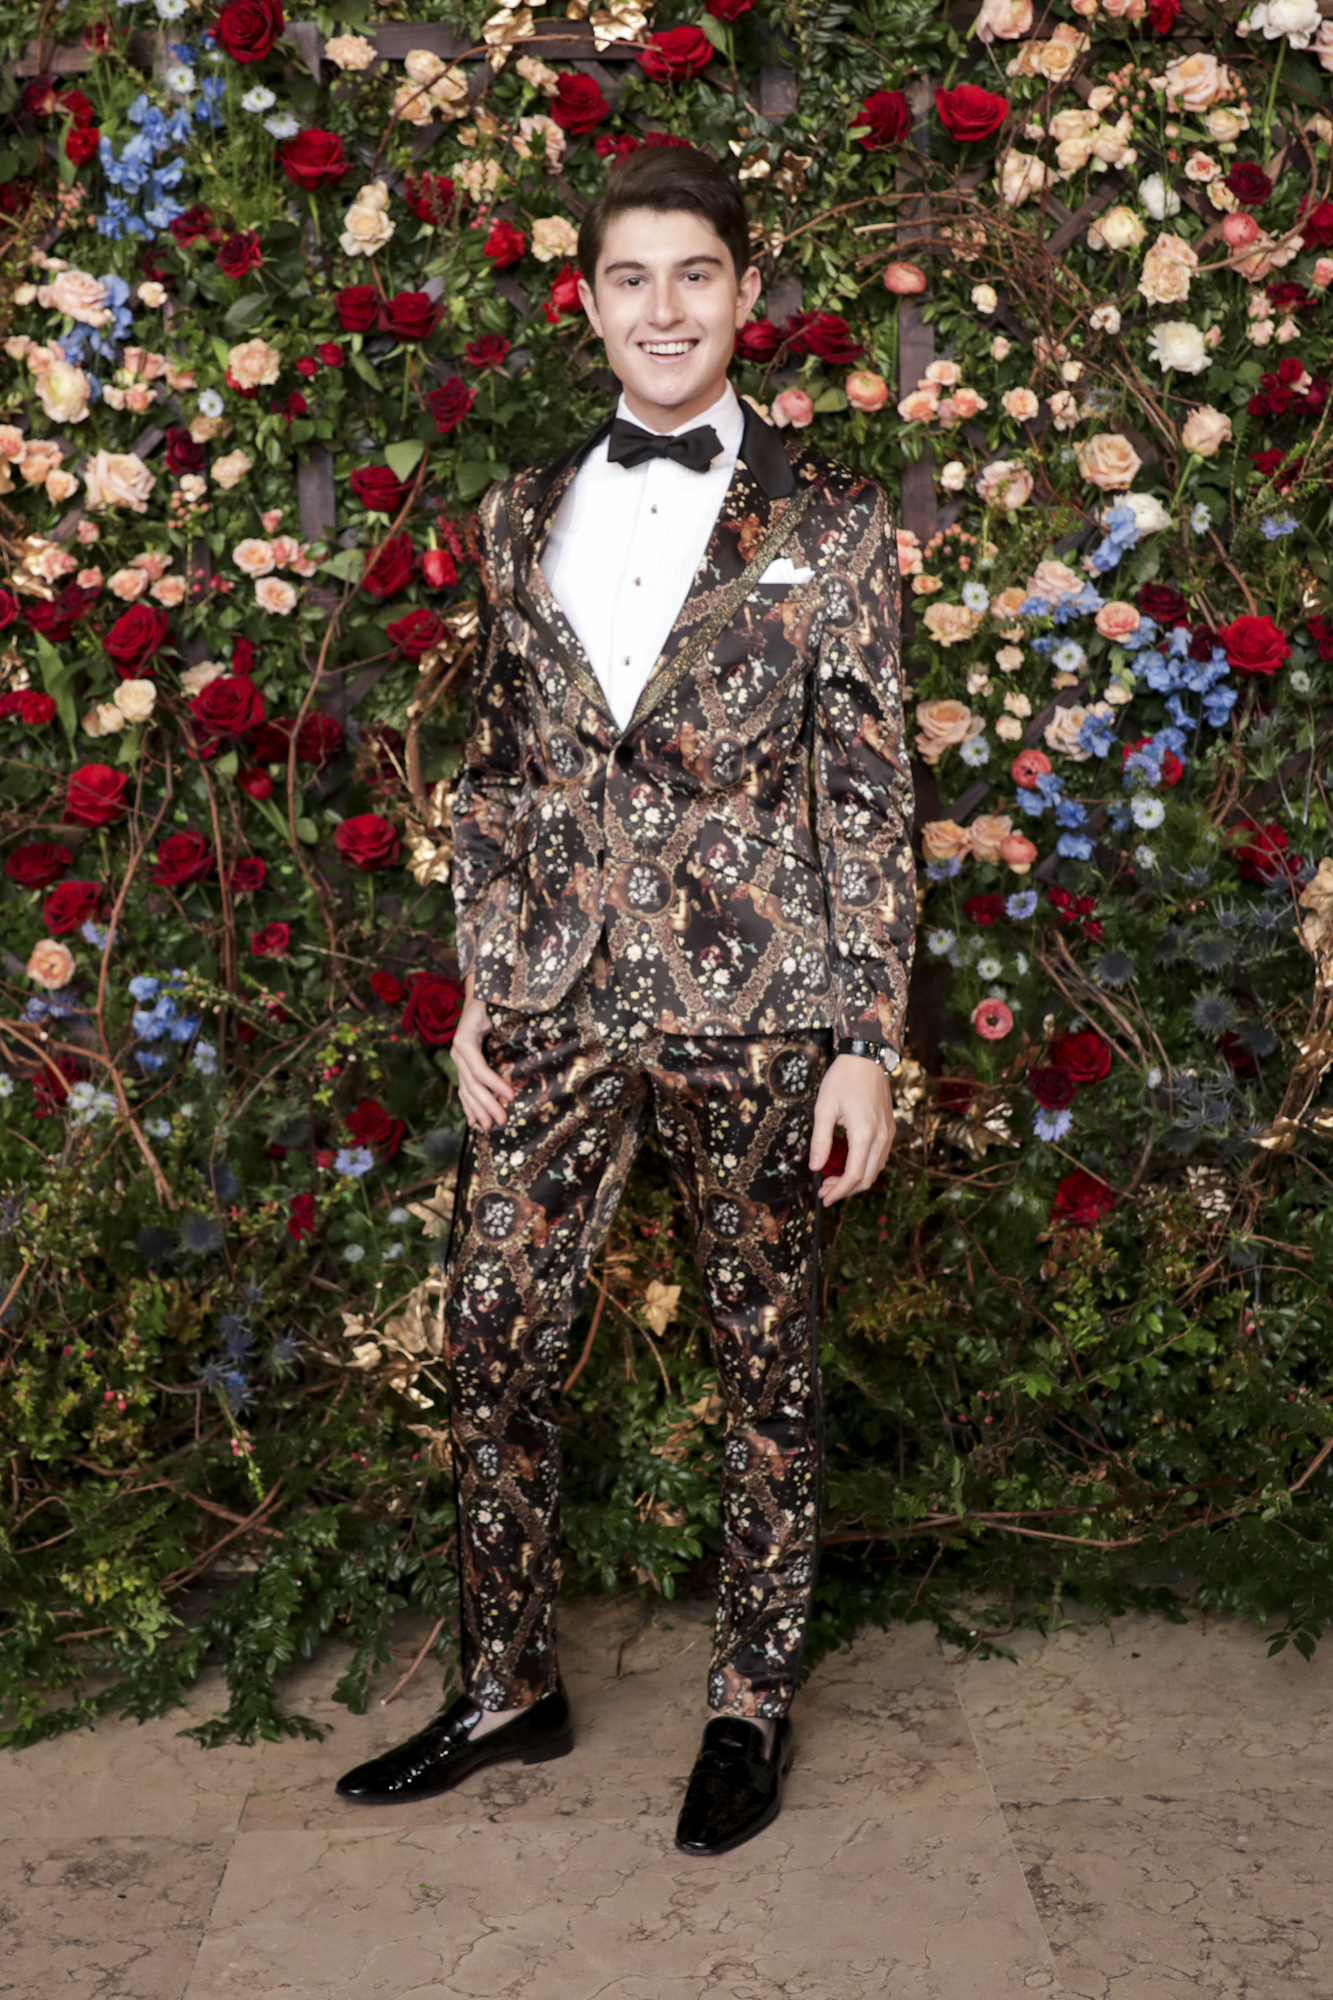 Larry Milstein attends The Frick Collection's 20th Annual Young Fellows Ball at 1 East 70th Street on Thursday, March 21st, 2019. Photography, Courtesy of The Frick Collection.